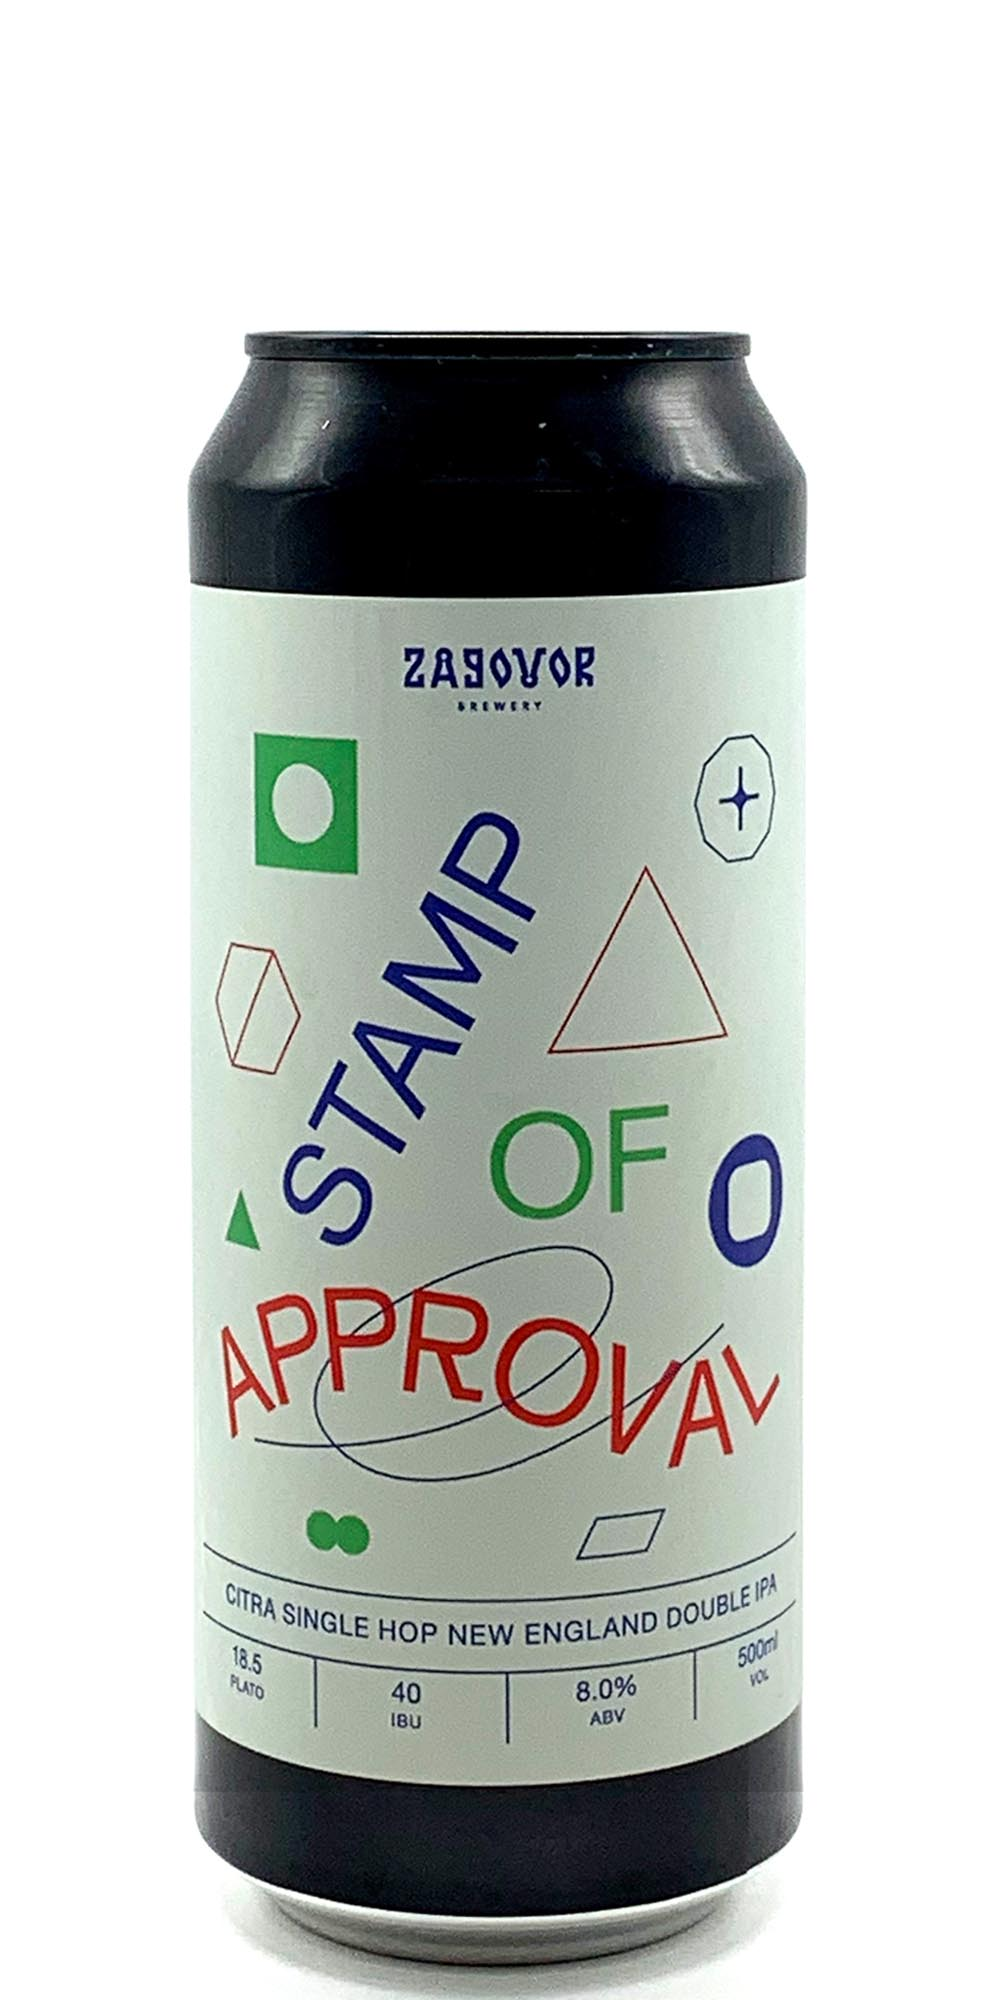 Zagovor Brewery - Stamp of Approval - Drikbeer - Order Craft Beer Online